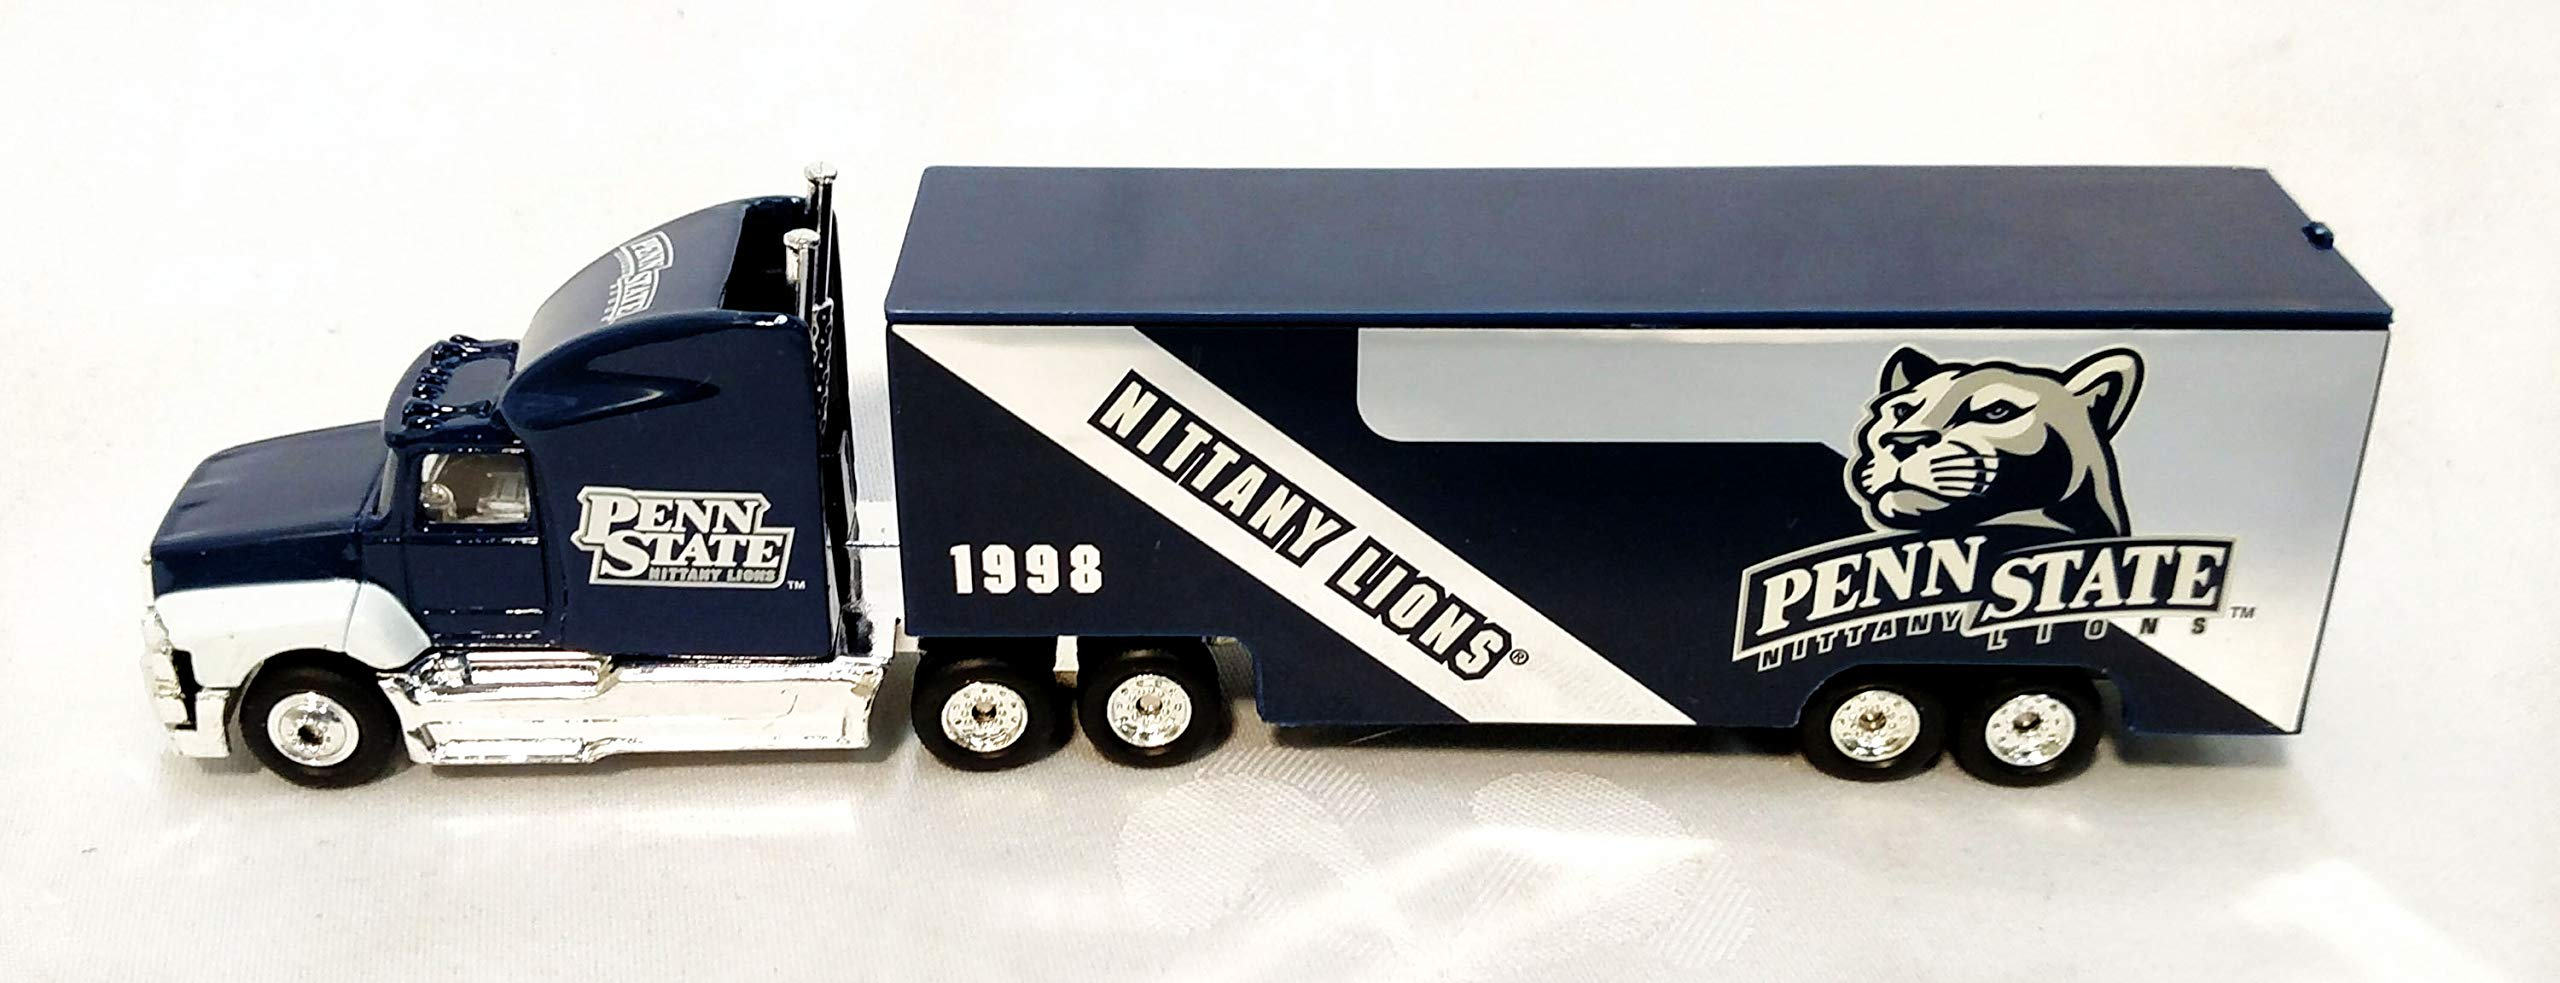 University of Penn State Nittany Lions 1998 Limited Edition Die Cast Tractor Trailer